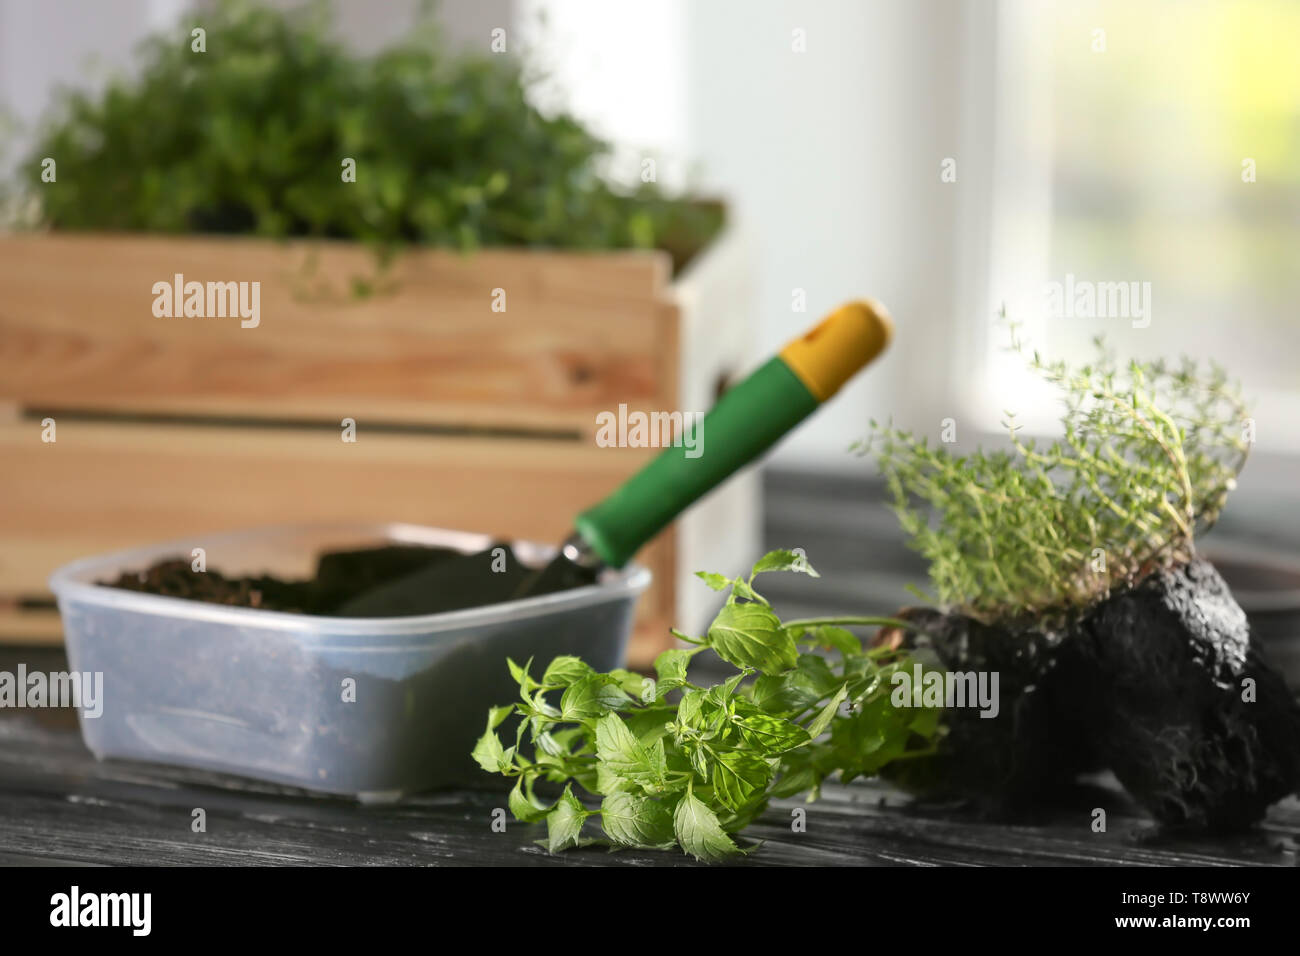 Plastic container with soil and fresh herbs on wooden table - Stock Image